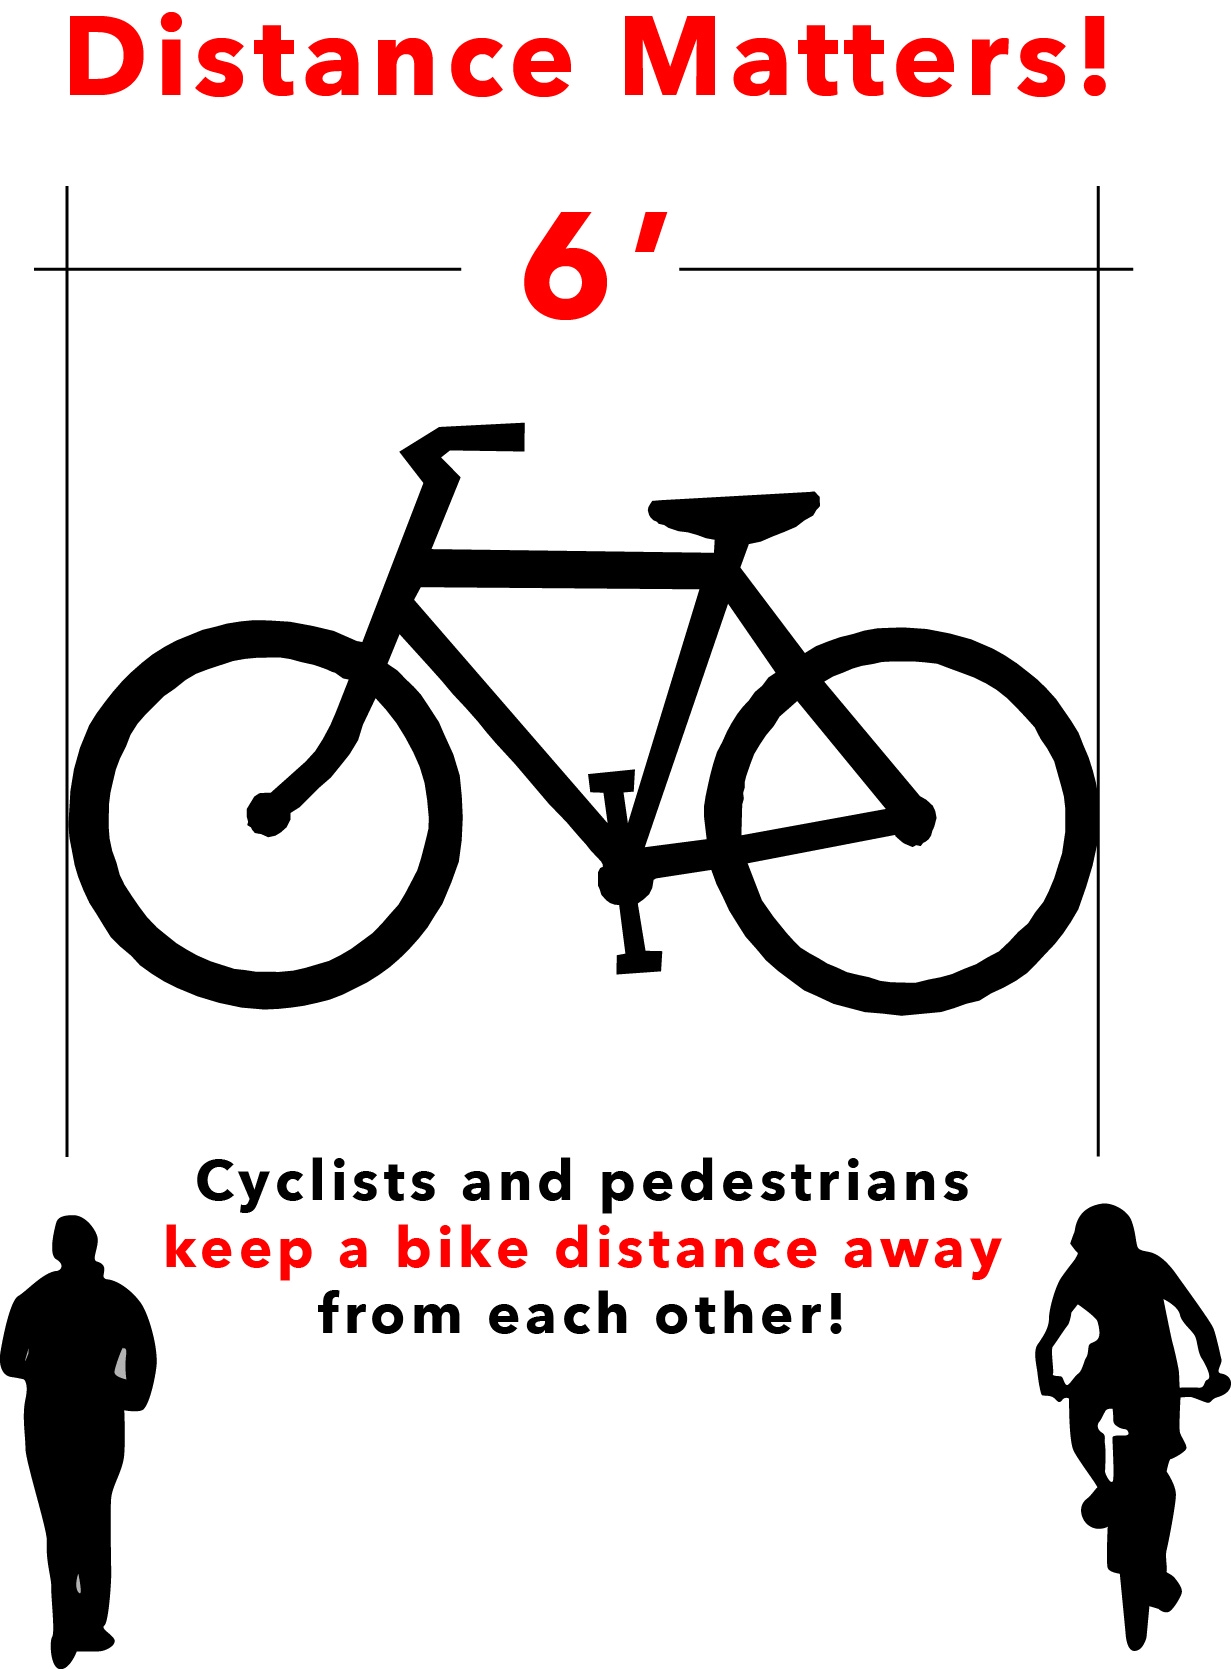 Distance Matters - Cyclist and pedestrians keep a bike distance away from each other